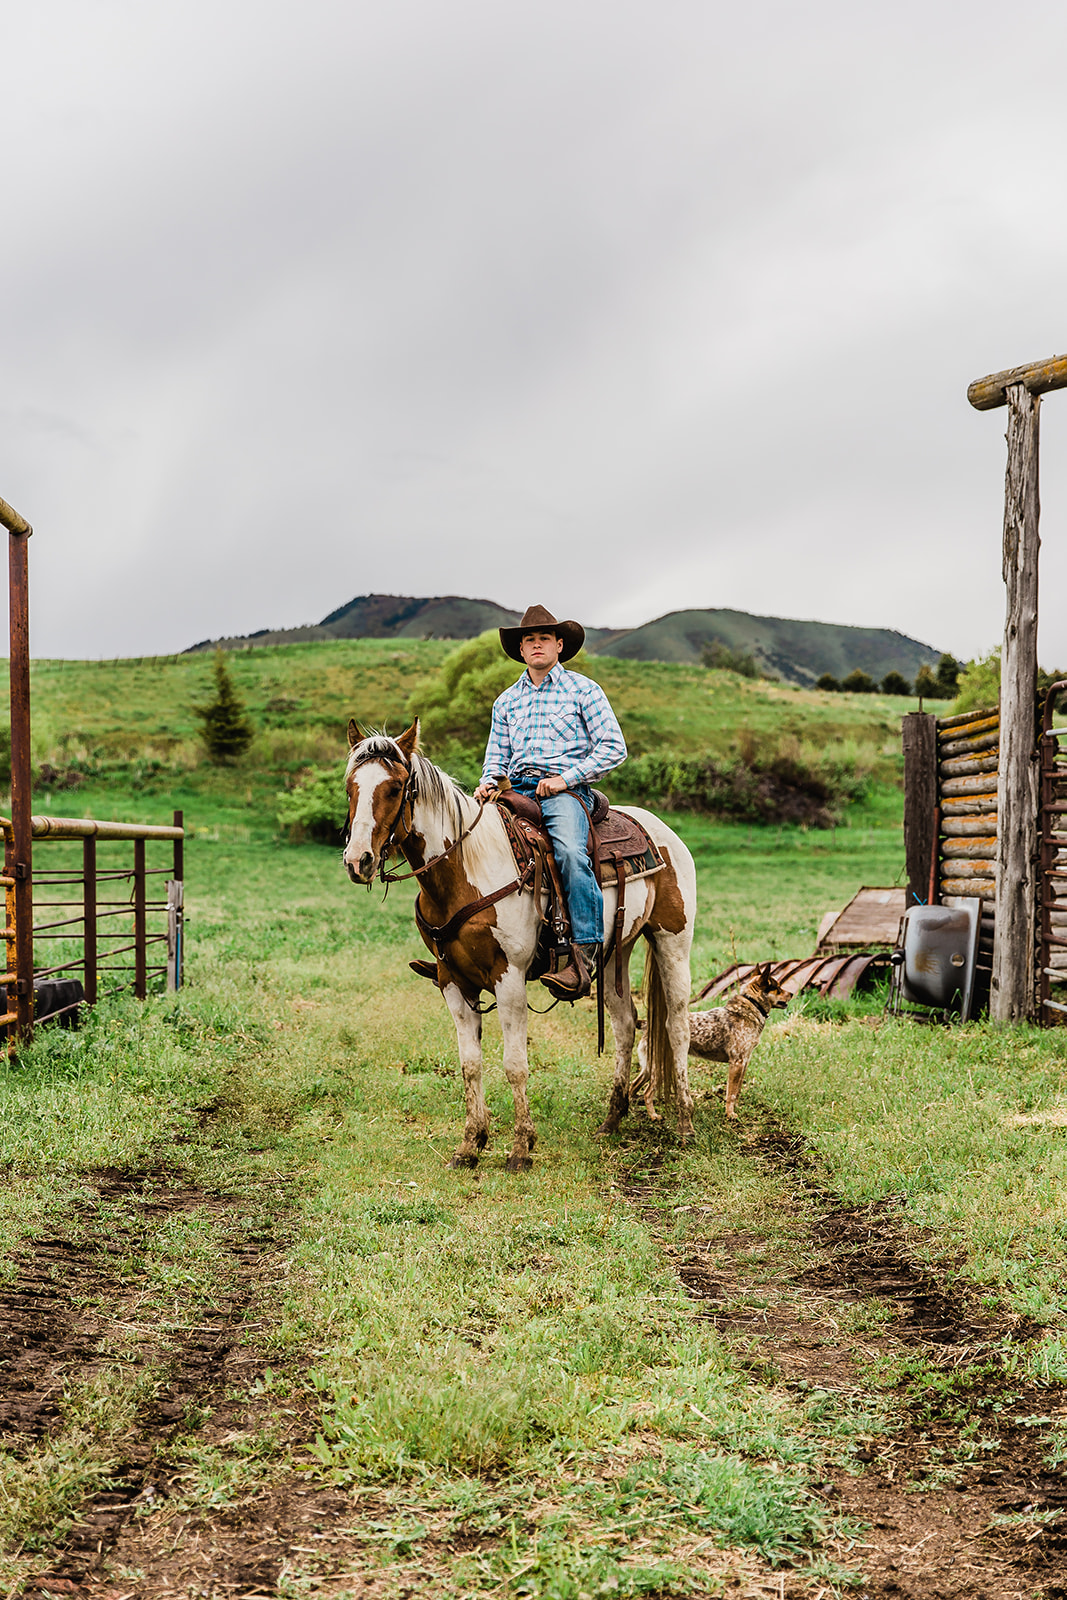 senior pictures on a horse paradise utah cache valley cowboy senior photos with bella alder photography professional portrait photographer #bellaalderphoto #seniorpictures #cowboy #portraits #cachevalley #paradiseutah #loganutahphotographer #utahseniors #utahportraitphotographer #utahseniorphotos #seniorphotos #graduation